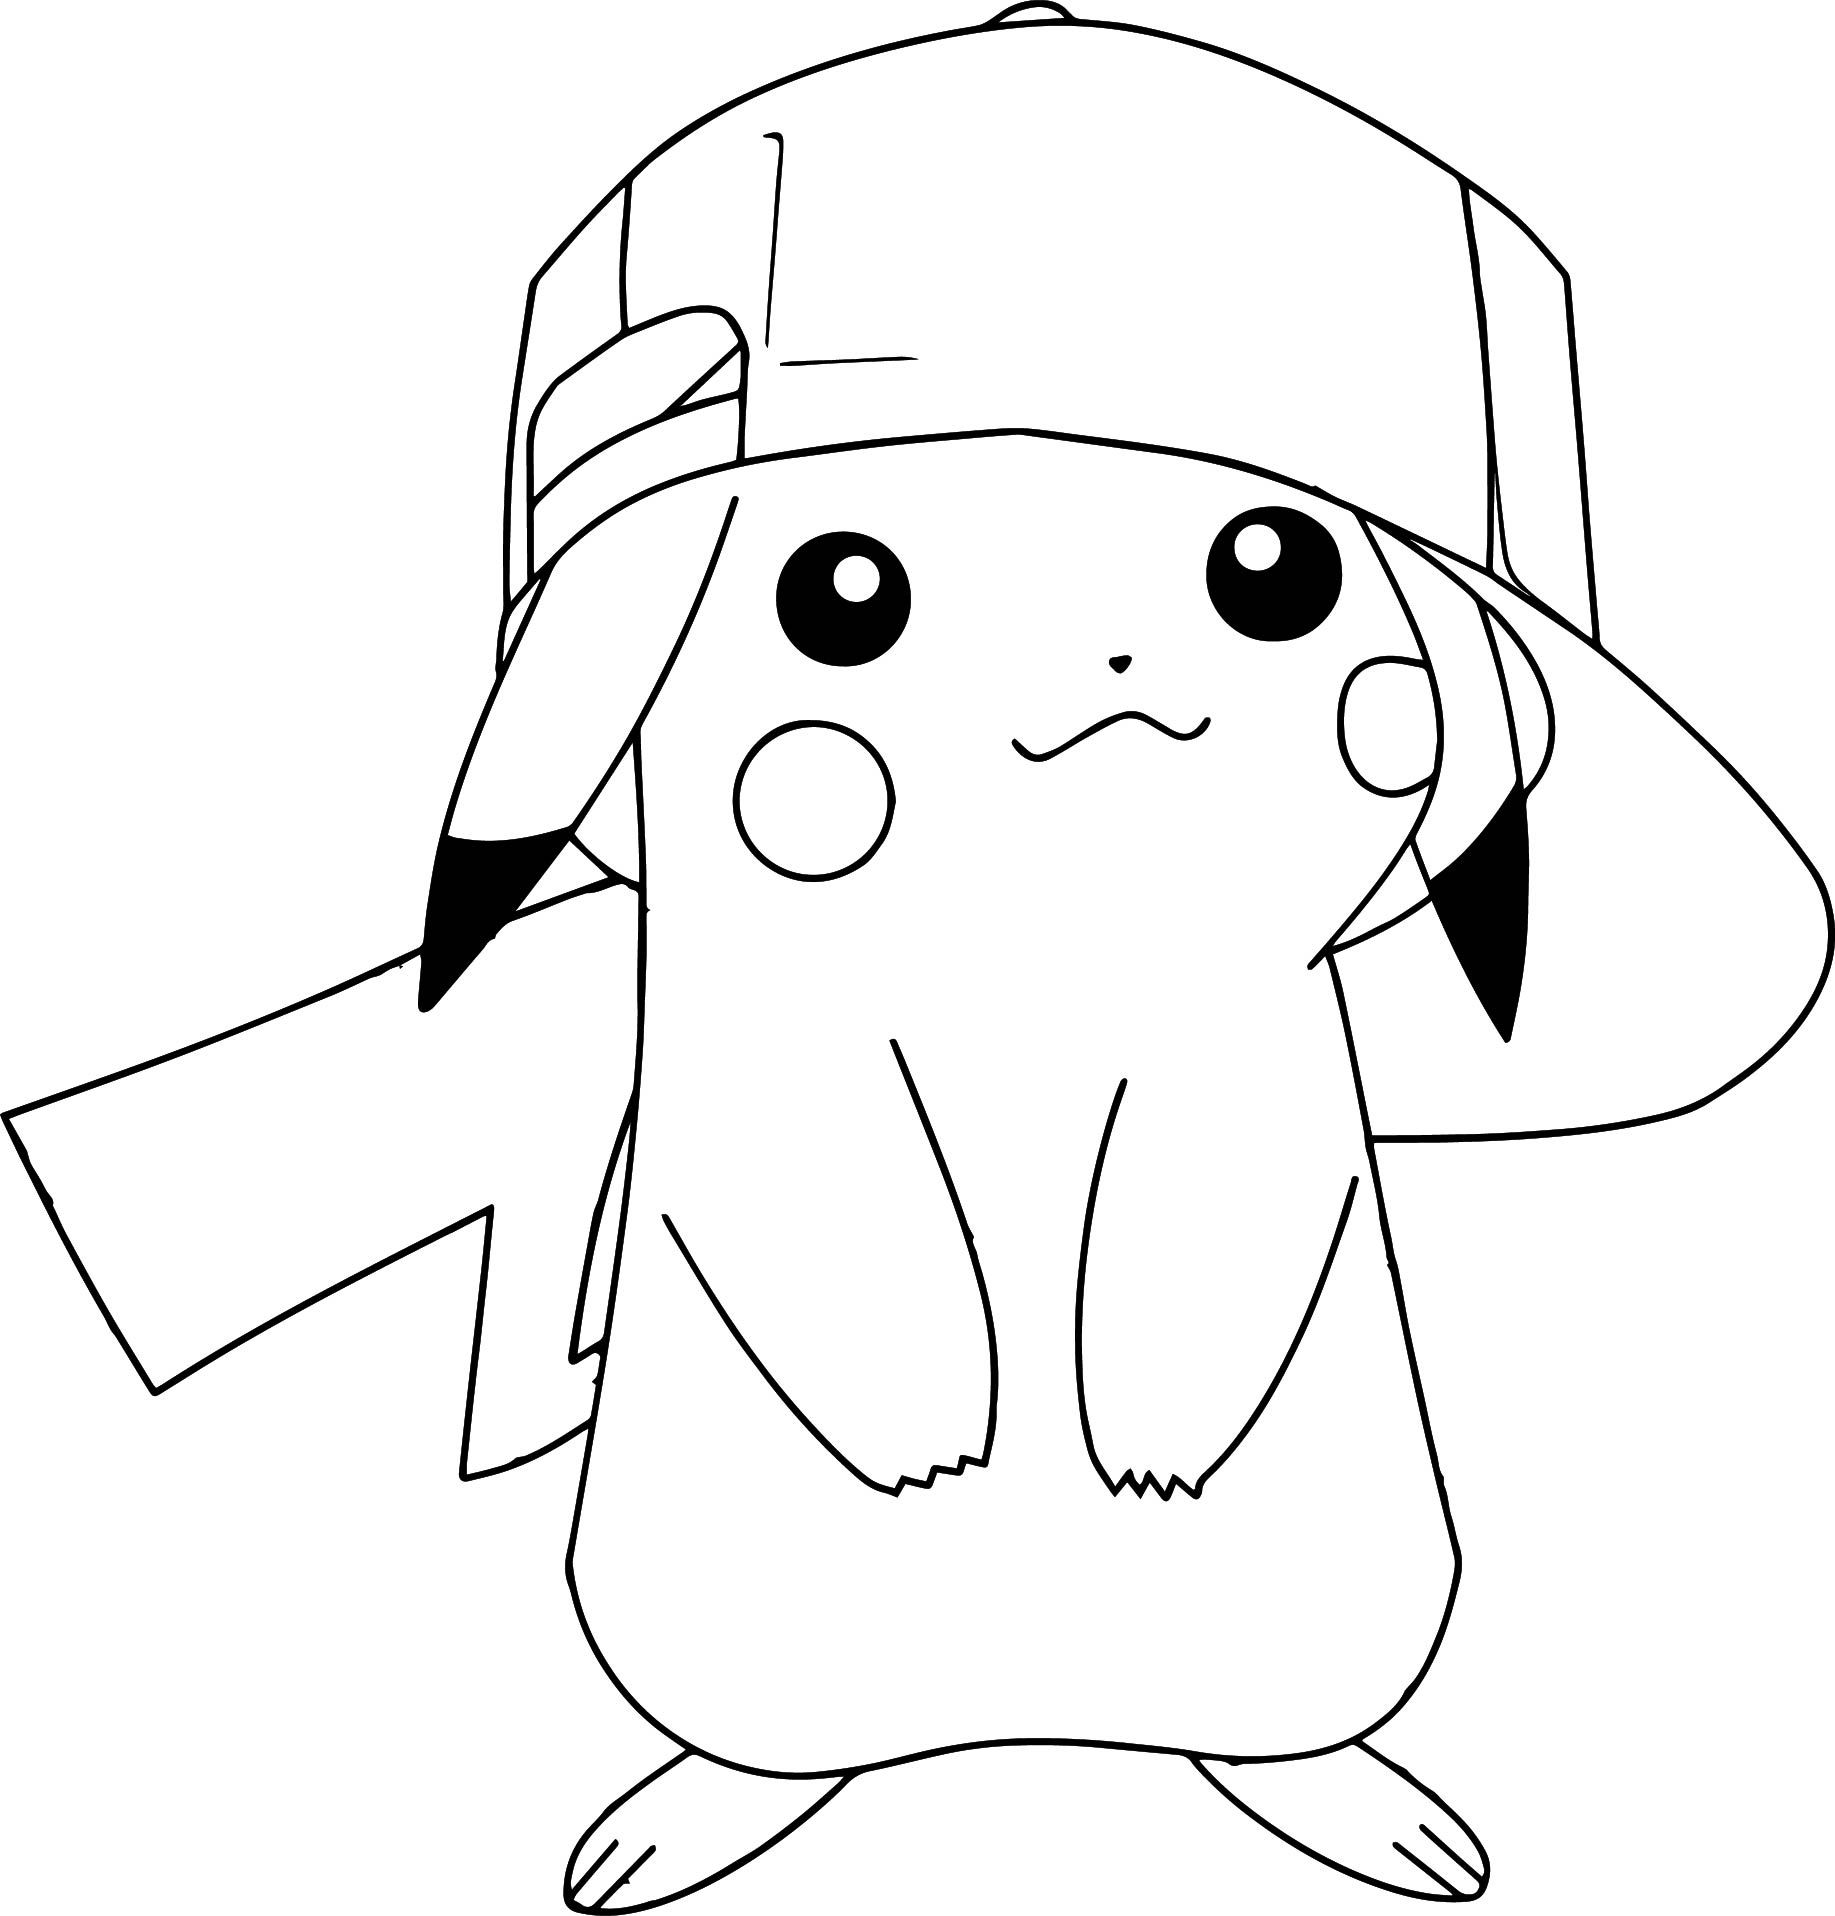 Uncategorized Coloring Pages Of Pikachu perfect pokemon coloring pages lol pinterest pikachu wearing hat